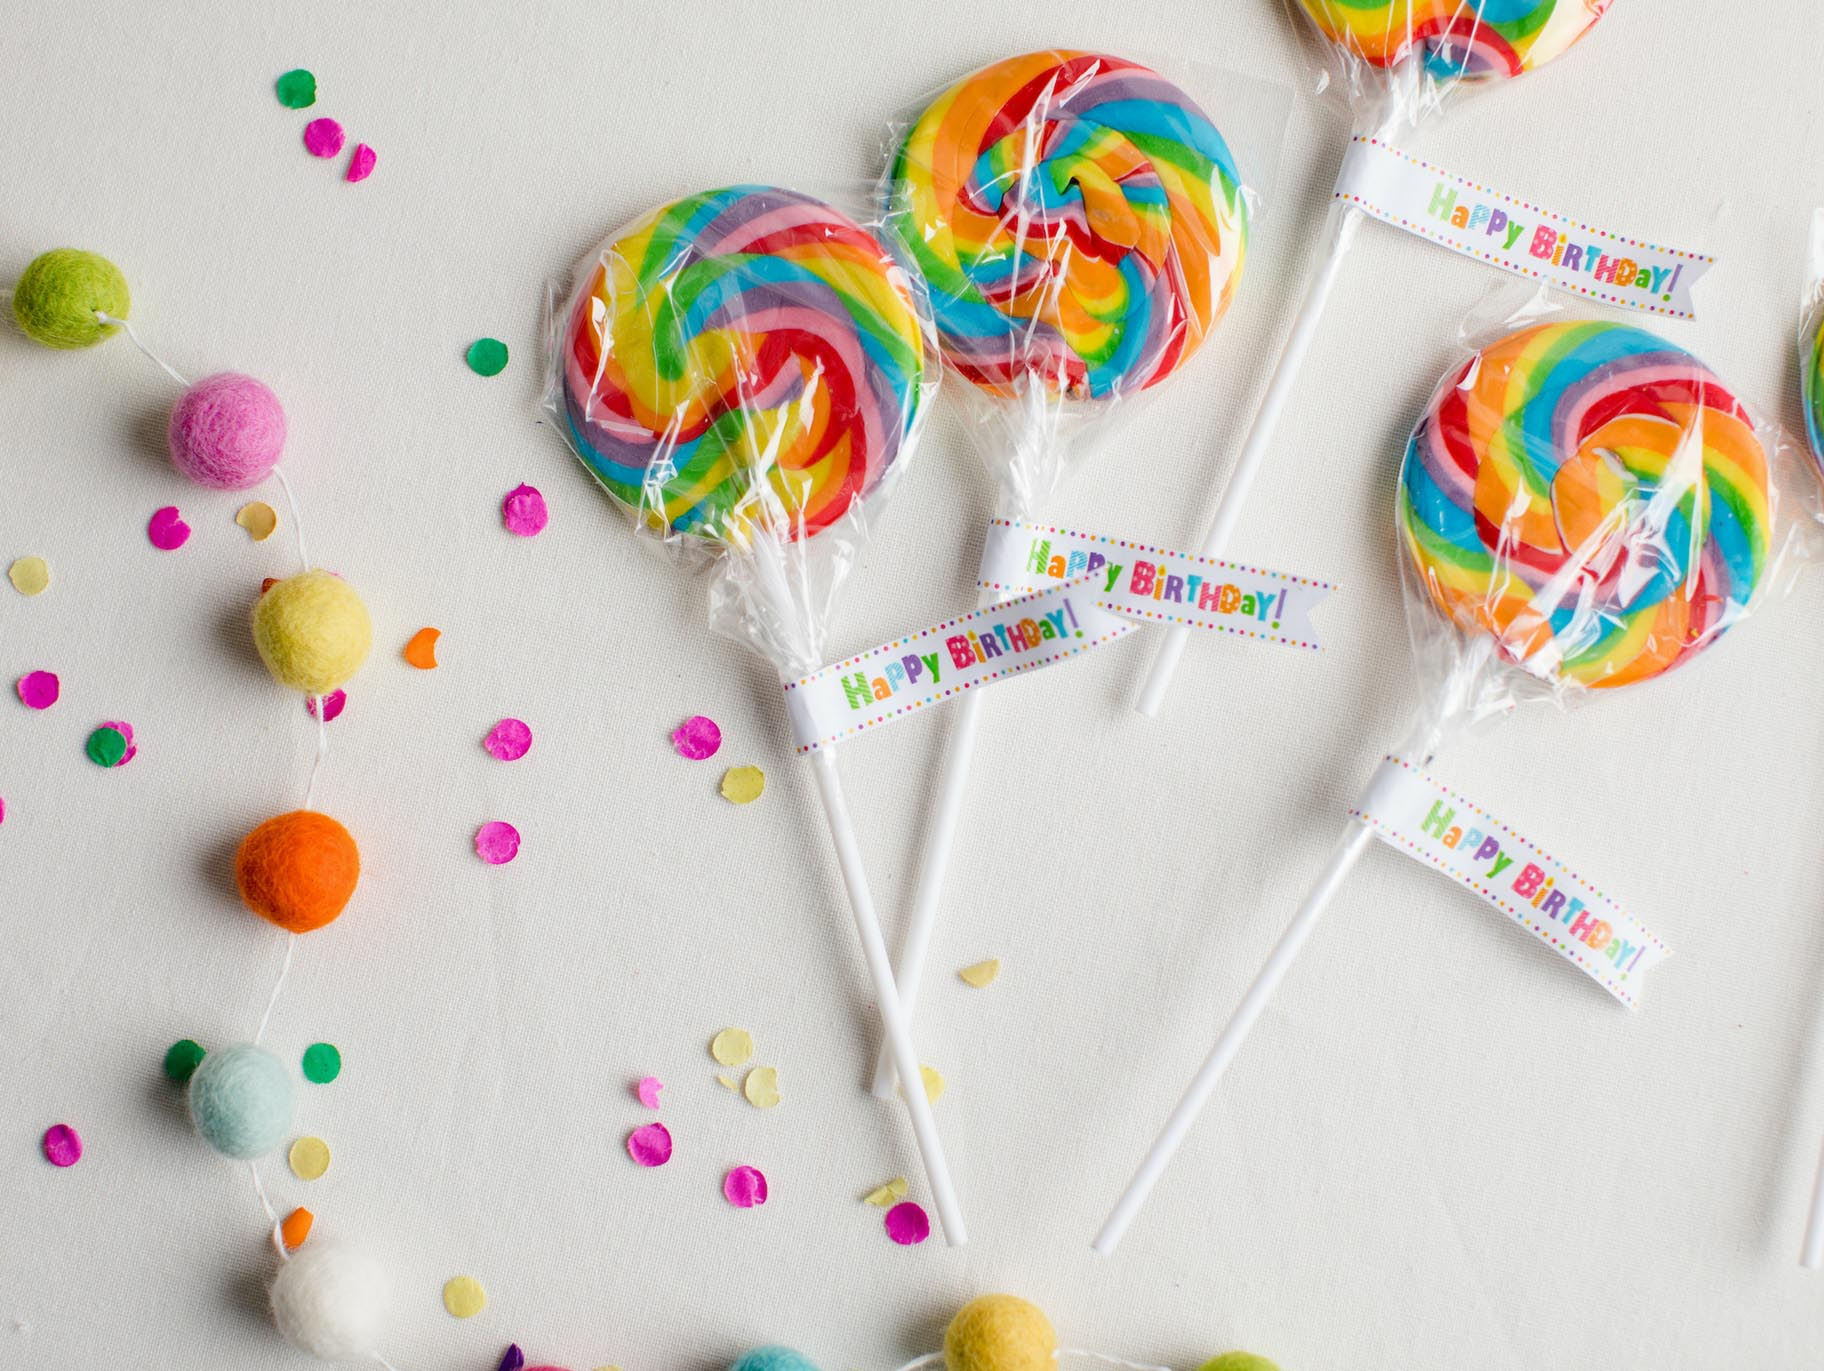 Free Printable Birthday Party Favor Tags - Birthday Party Favor Tags Printable Free